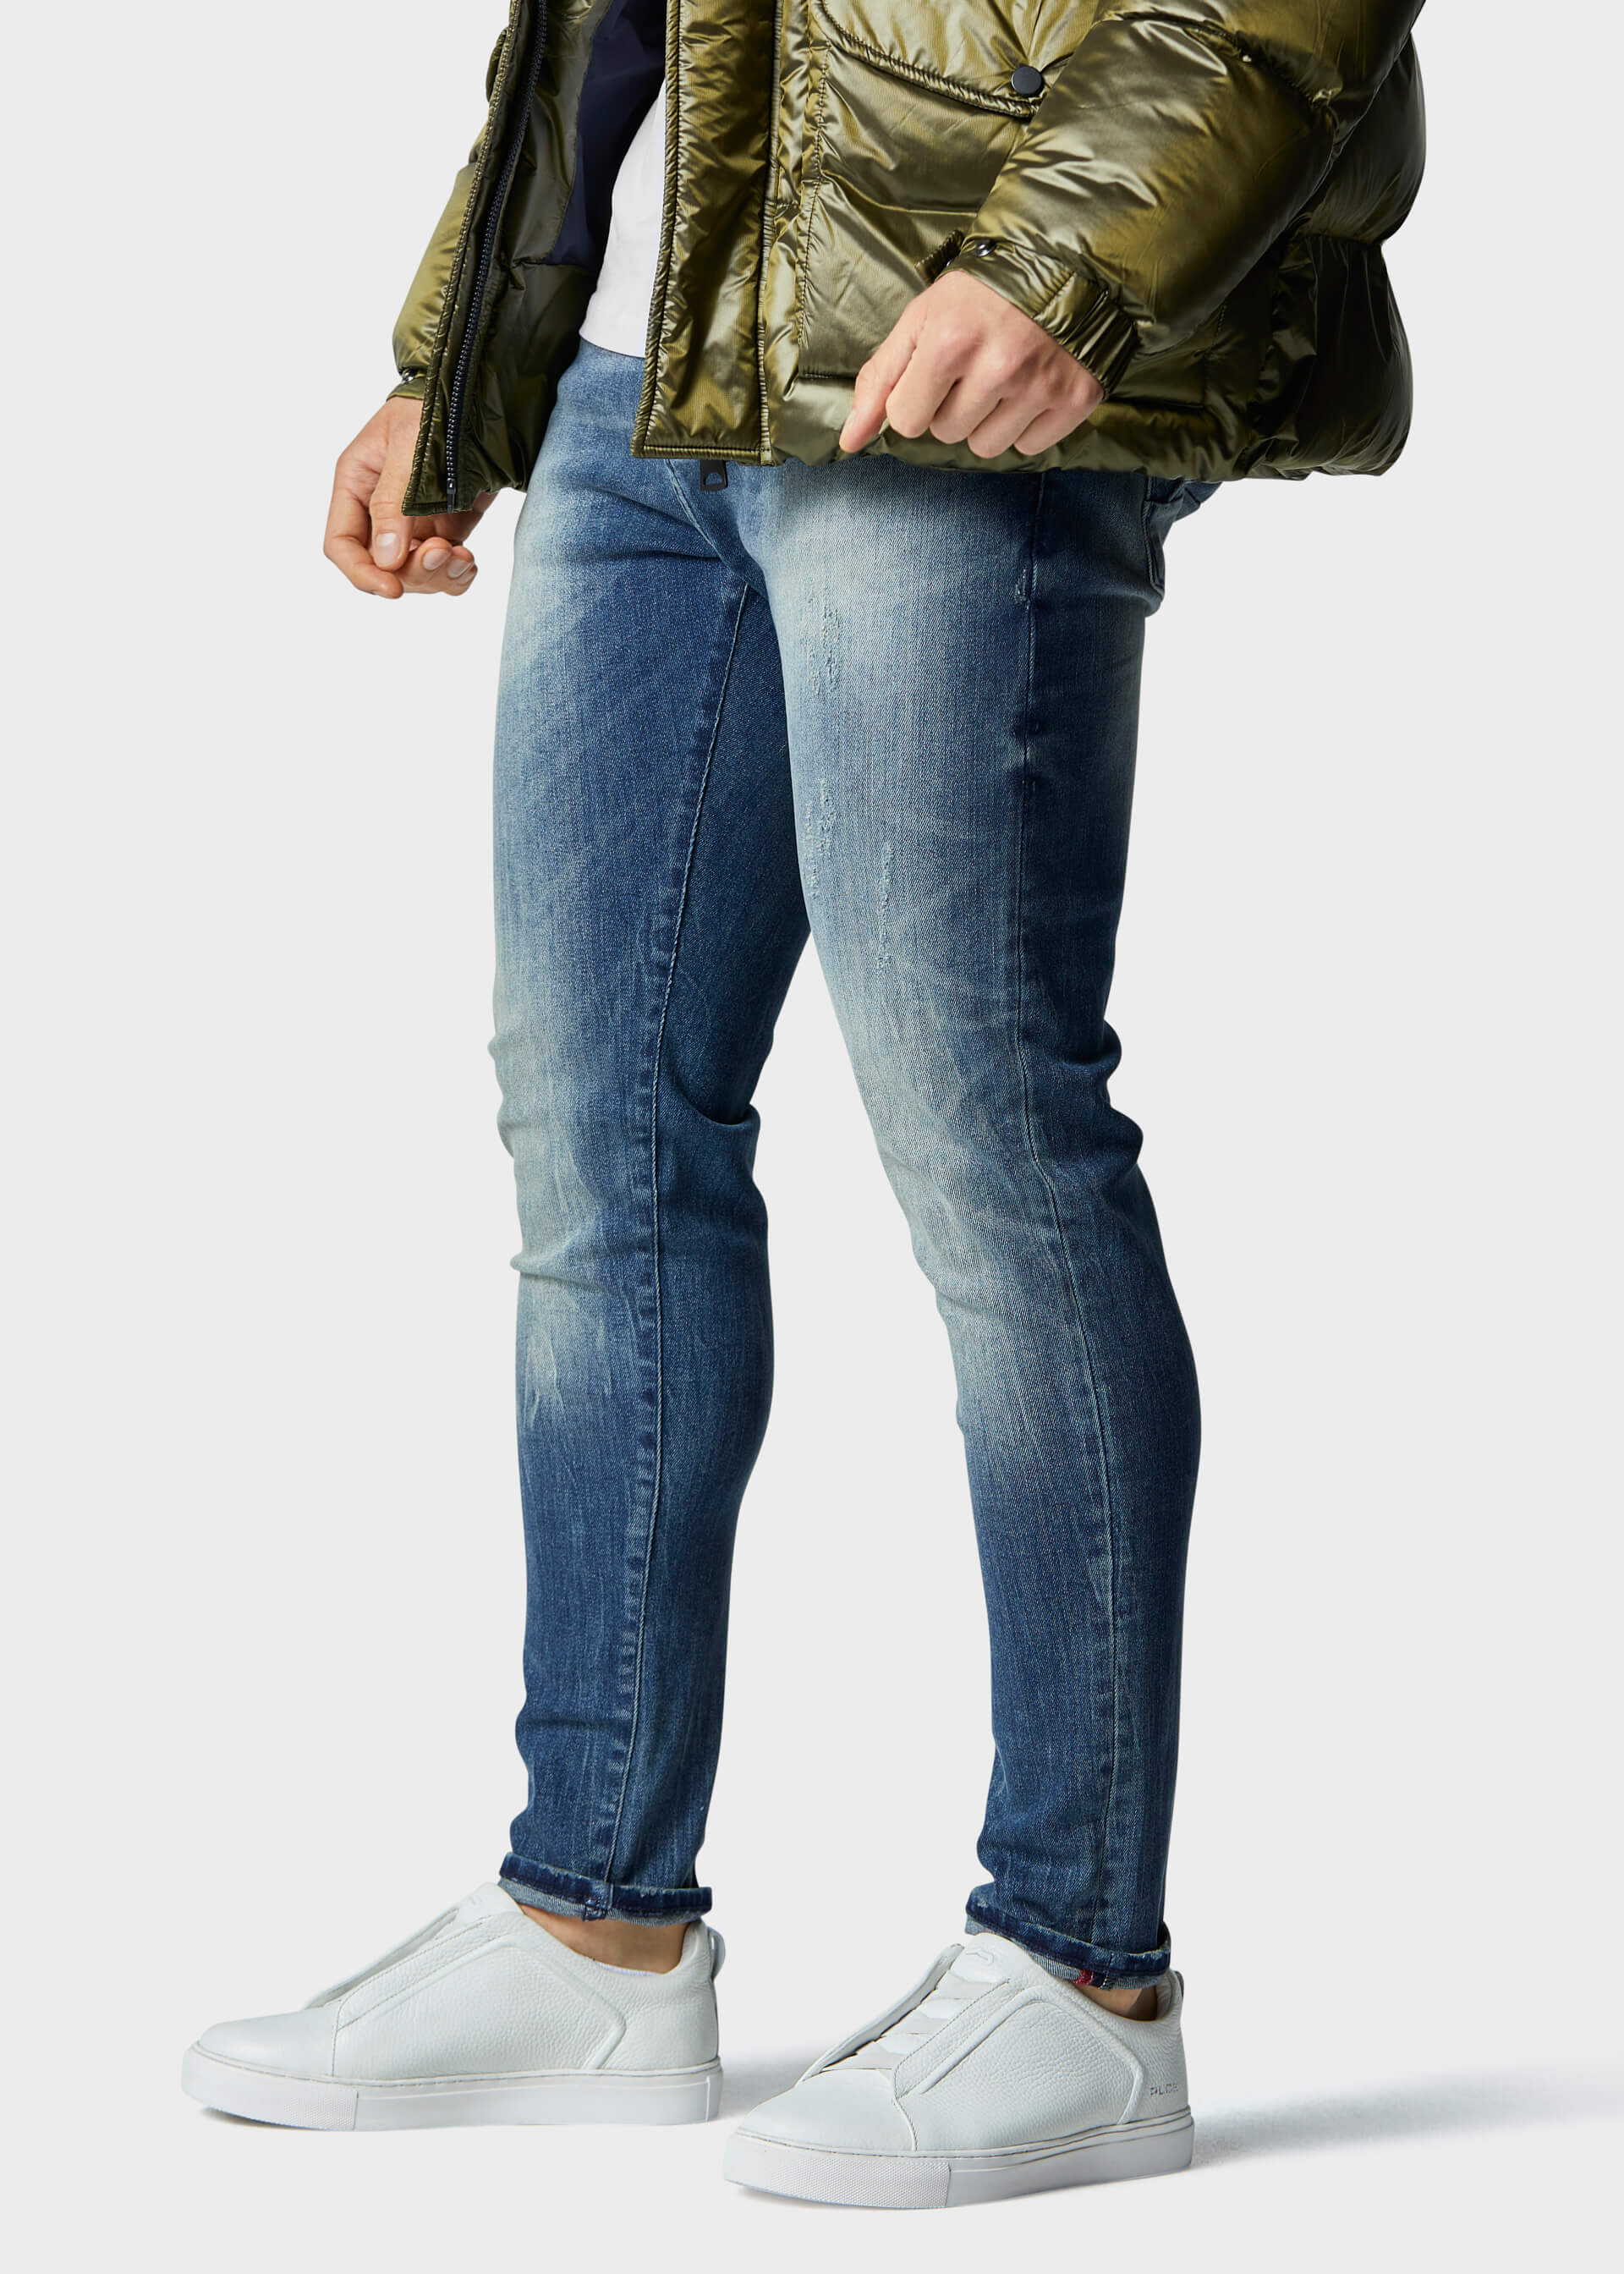 Moriarty LAK 738 Slim Fit Jeans second_image